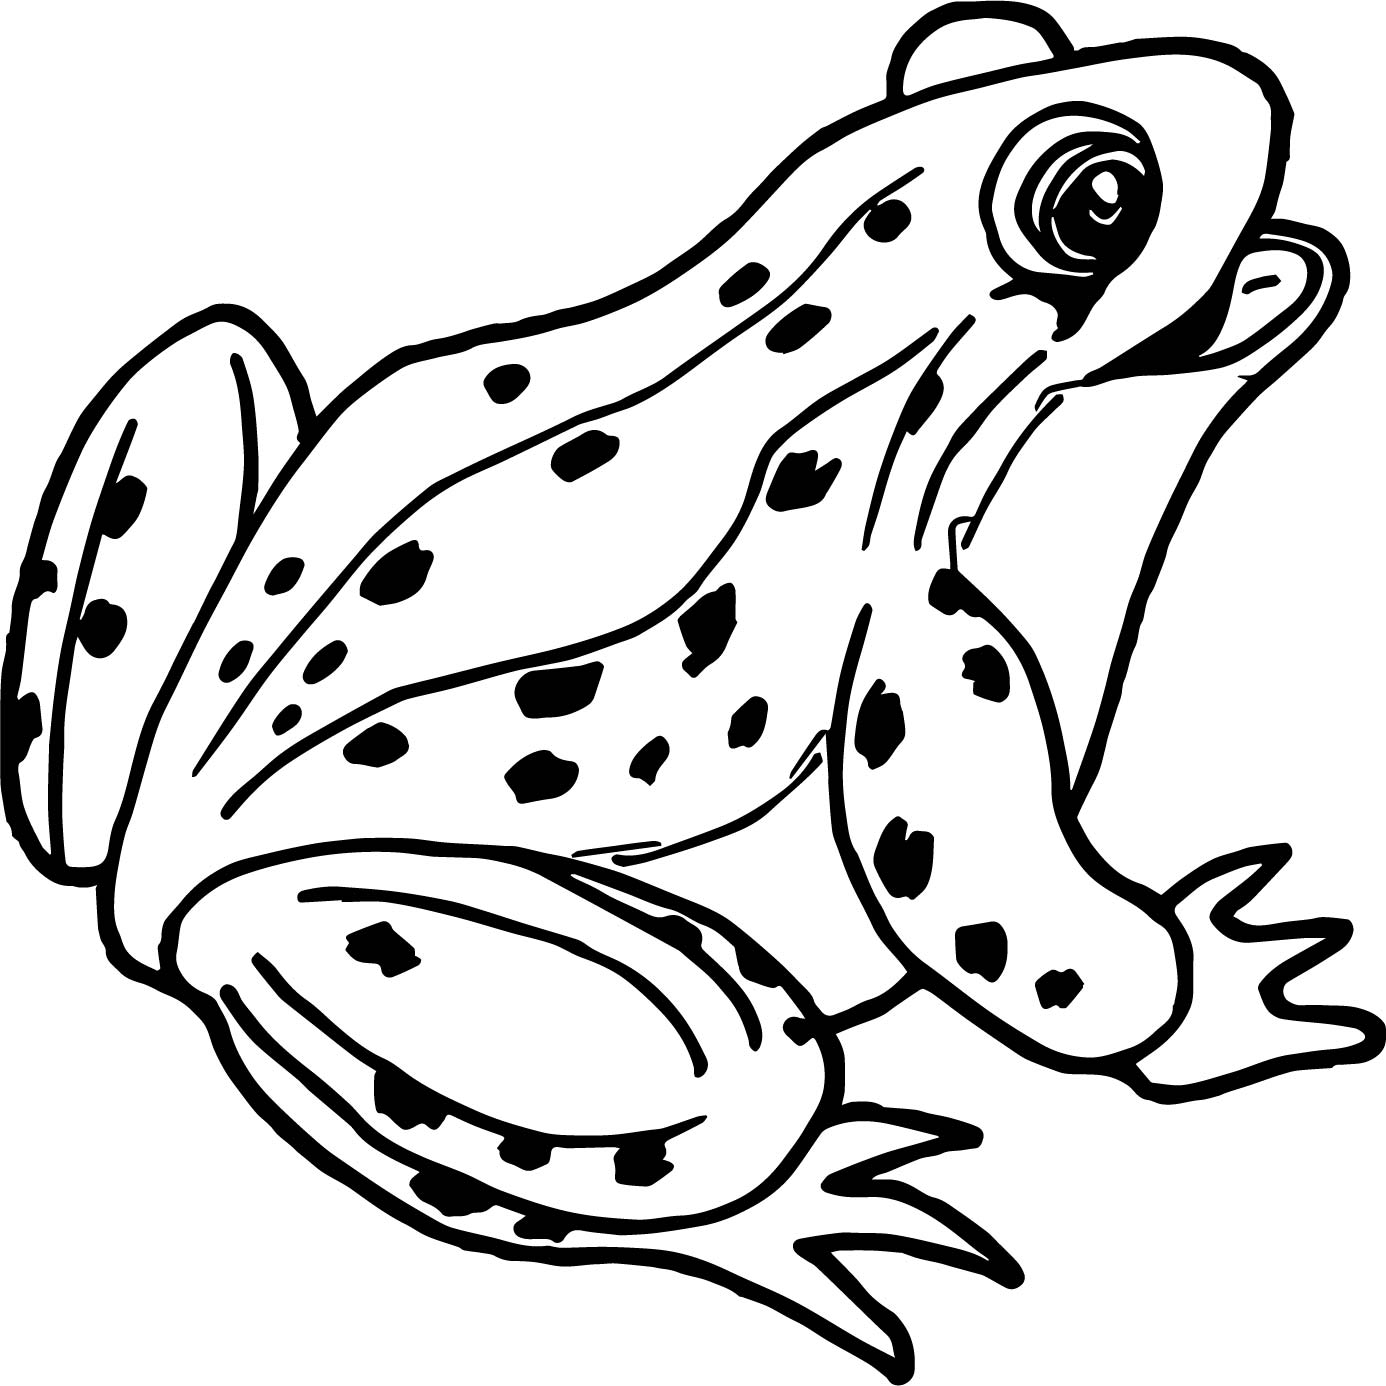 coloring image of a frog frogs coloring pages to download and print for free image of a coloring frog